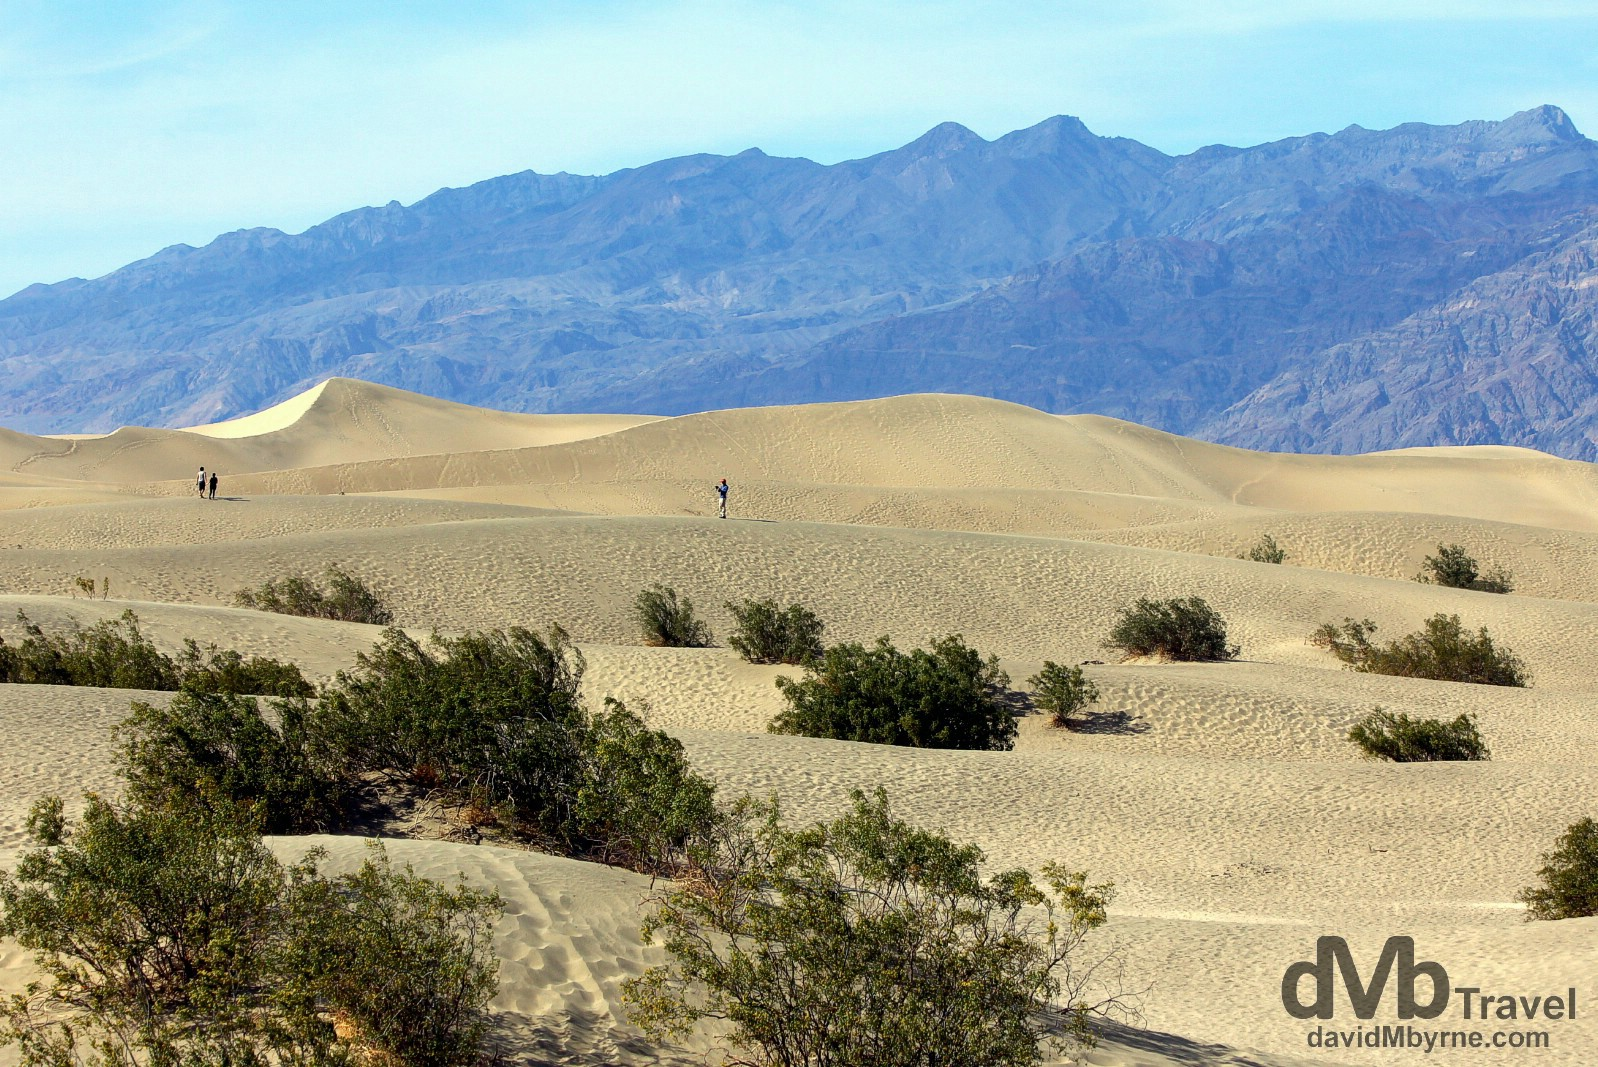 Mesquite Flat Sand Dunes, Death Valley National Park, California, USA. April 3rd 2013.